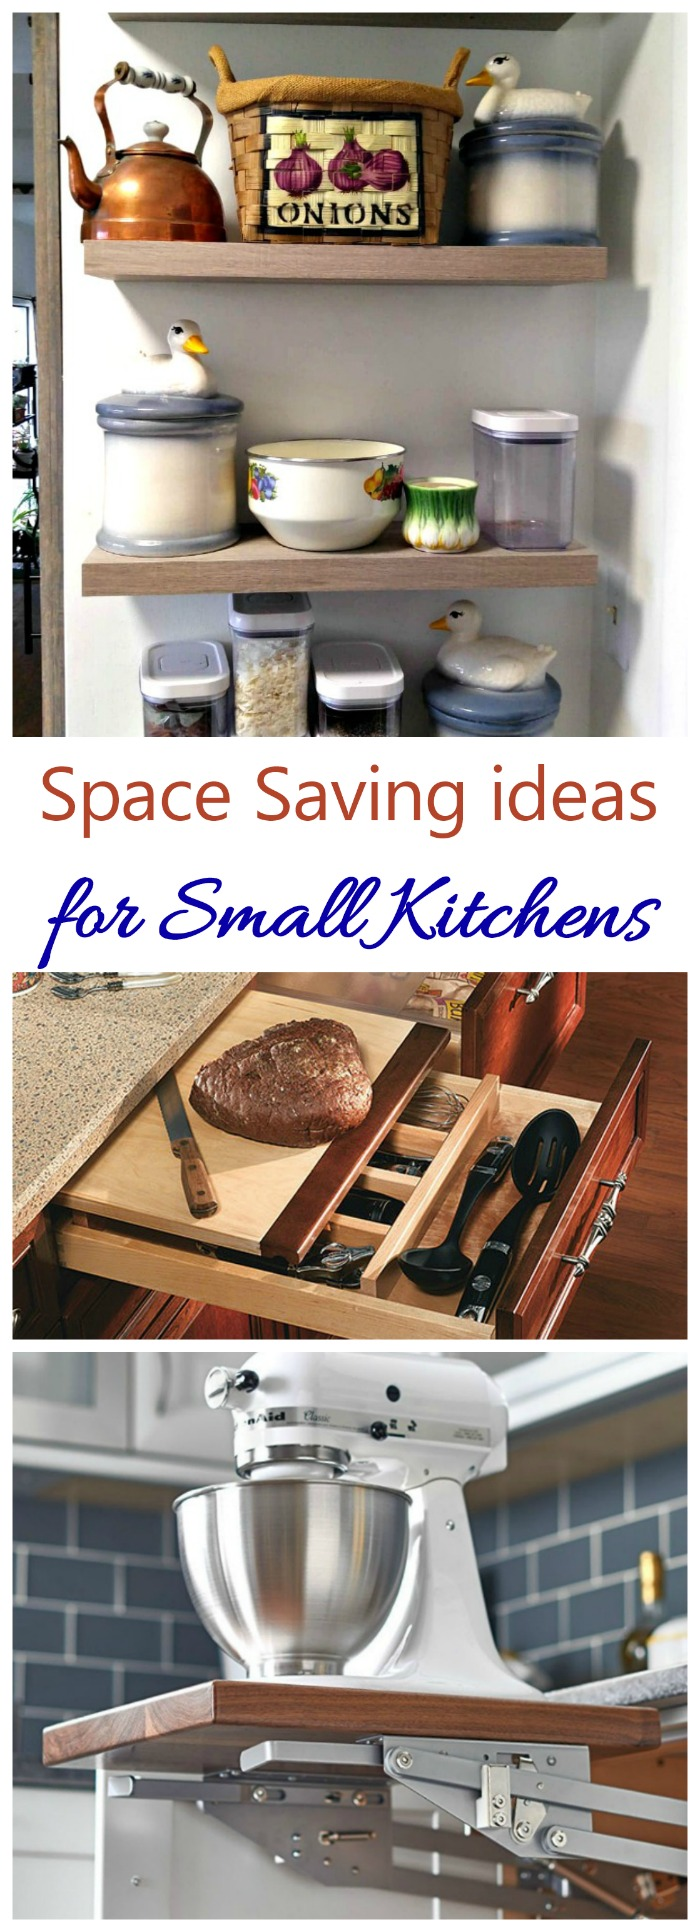 These Space Saving Kitchen Ideas Will Make The Most Of The Space You Have  In Your